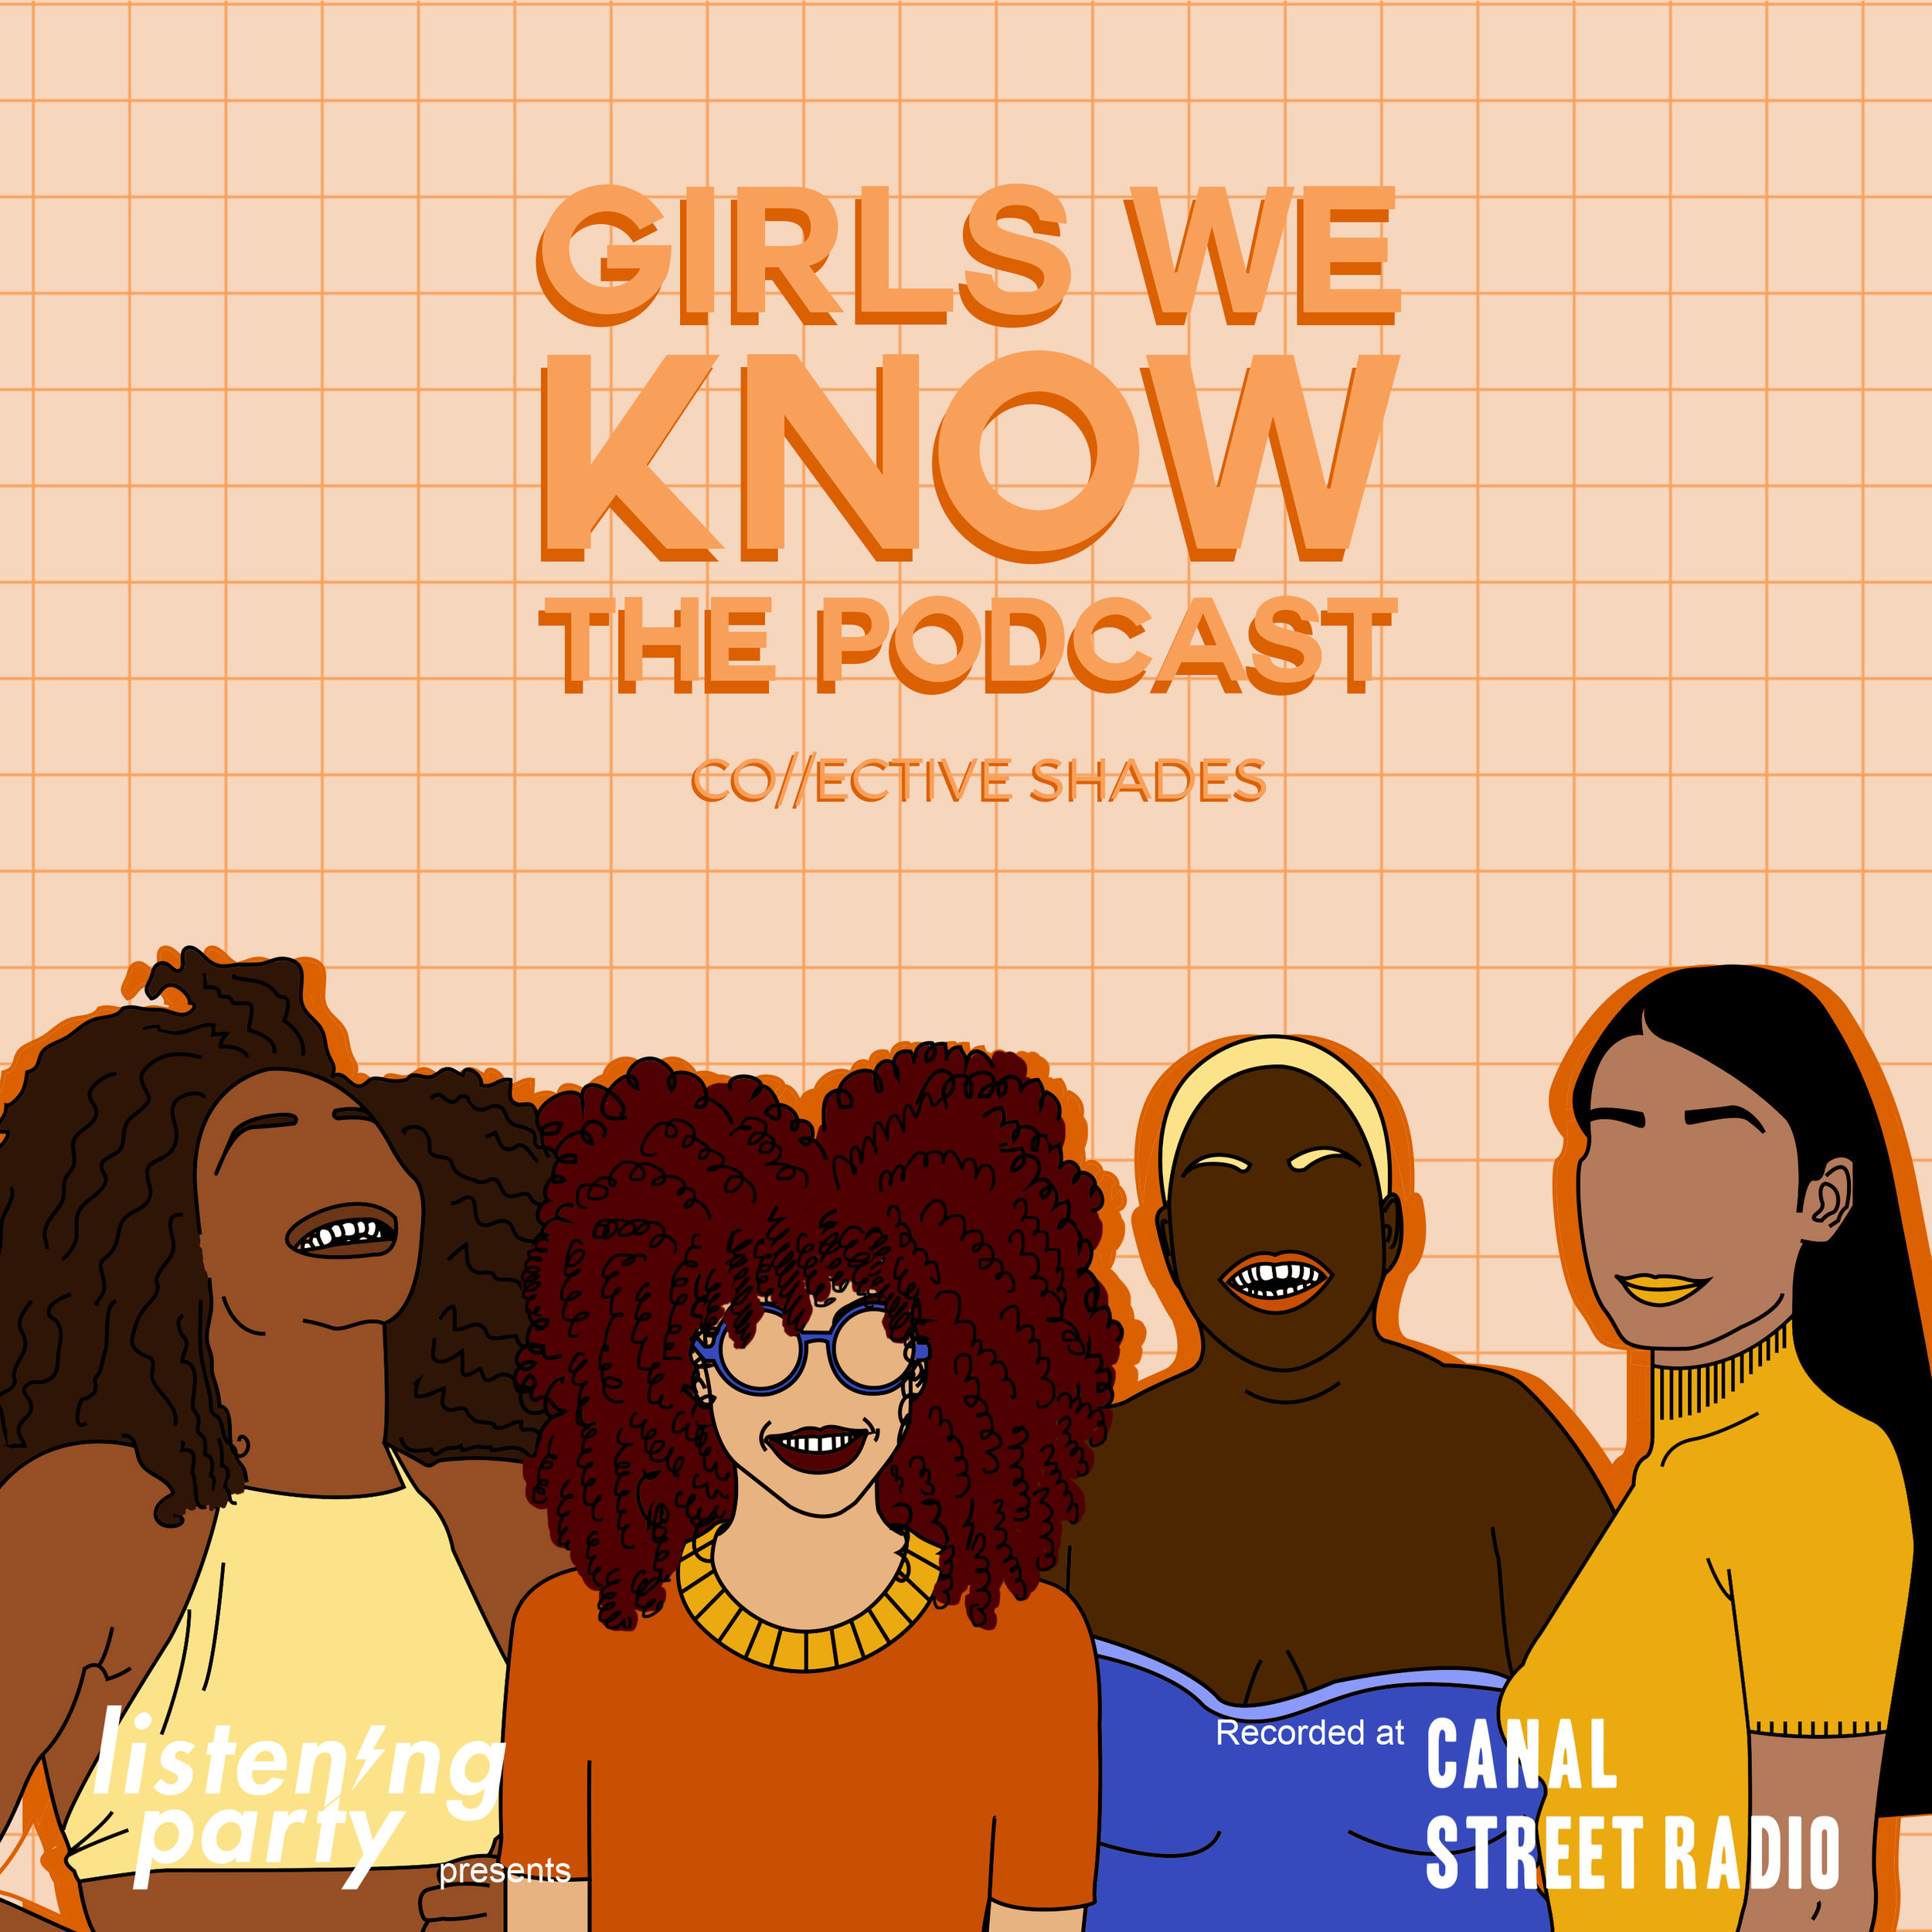 GIRLS WE KNOW POSCAST - Podcast artwork for Collective Shades